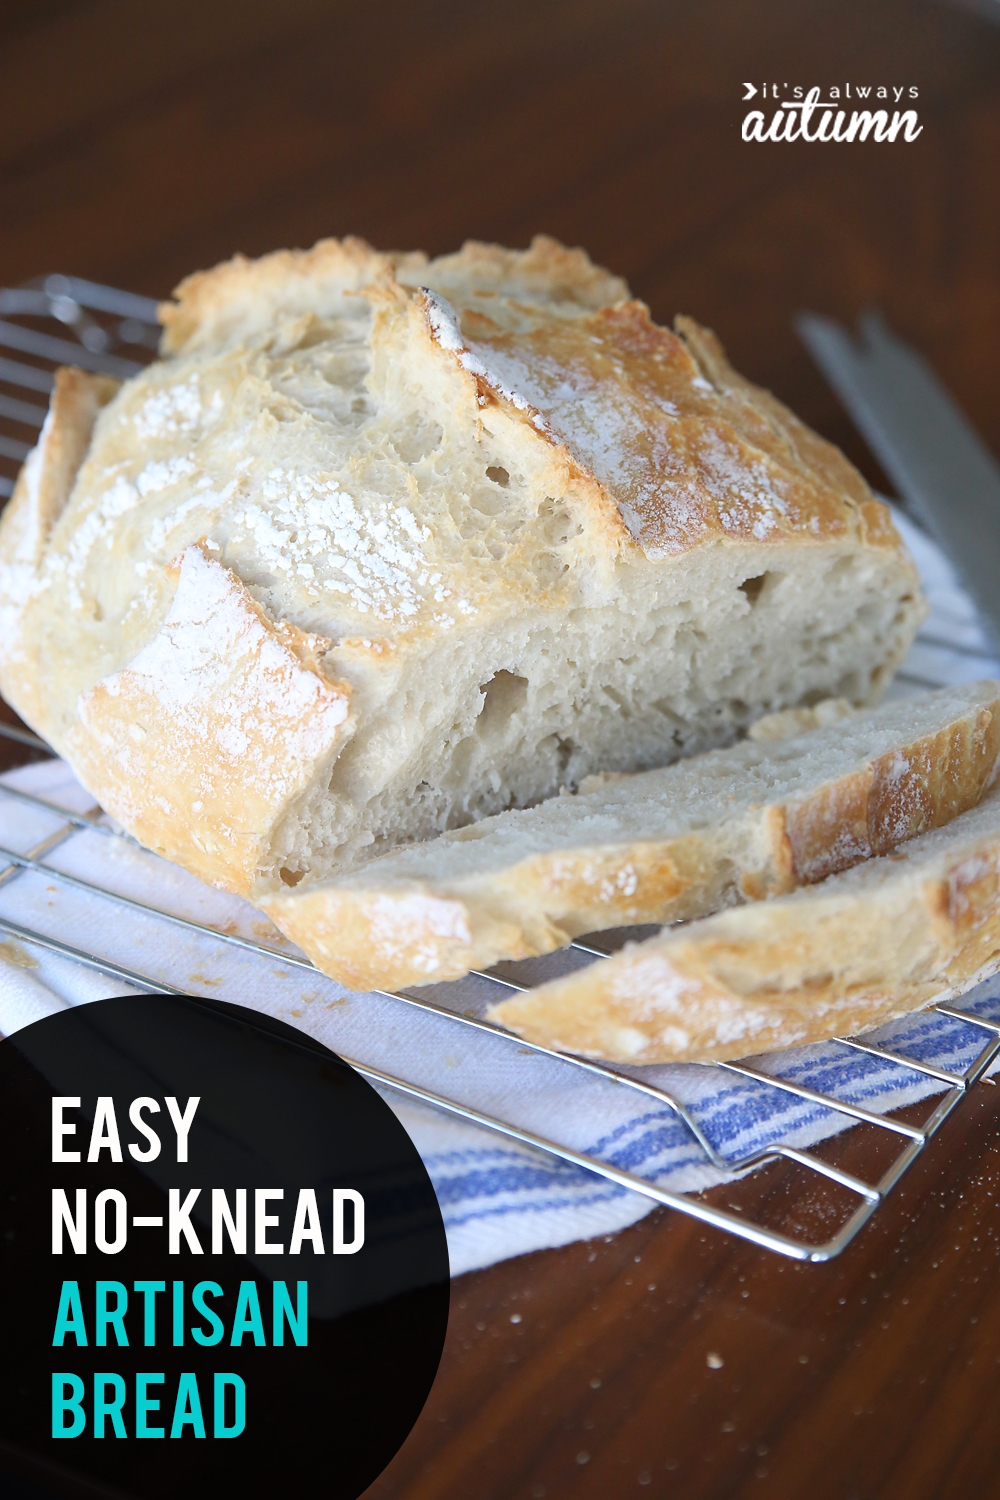 This artisan bread recipe is crazy easy to make! Only four ingredients and no kneading required. Perfect homemade bread for beginners!